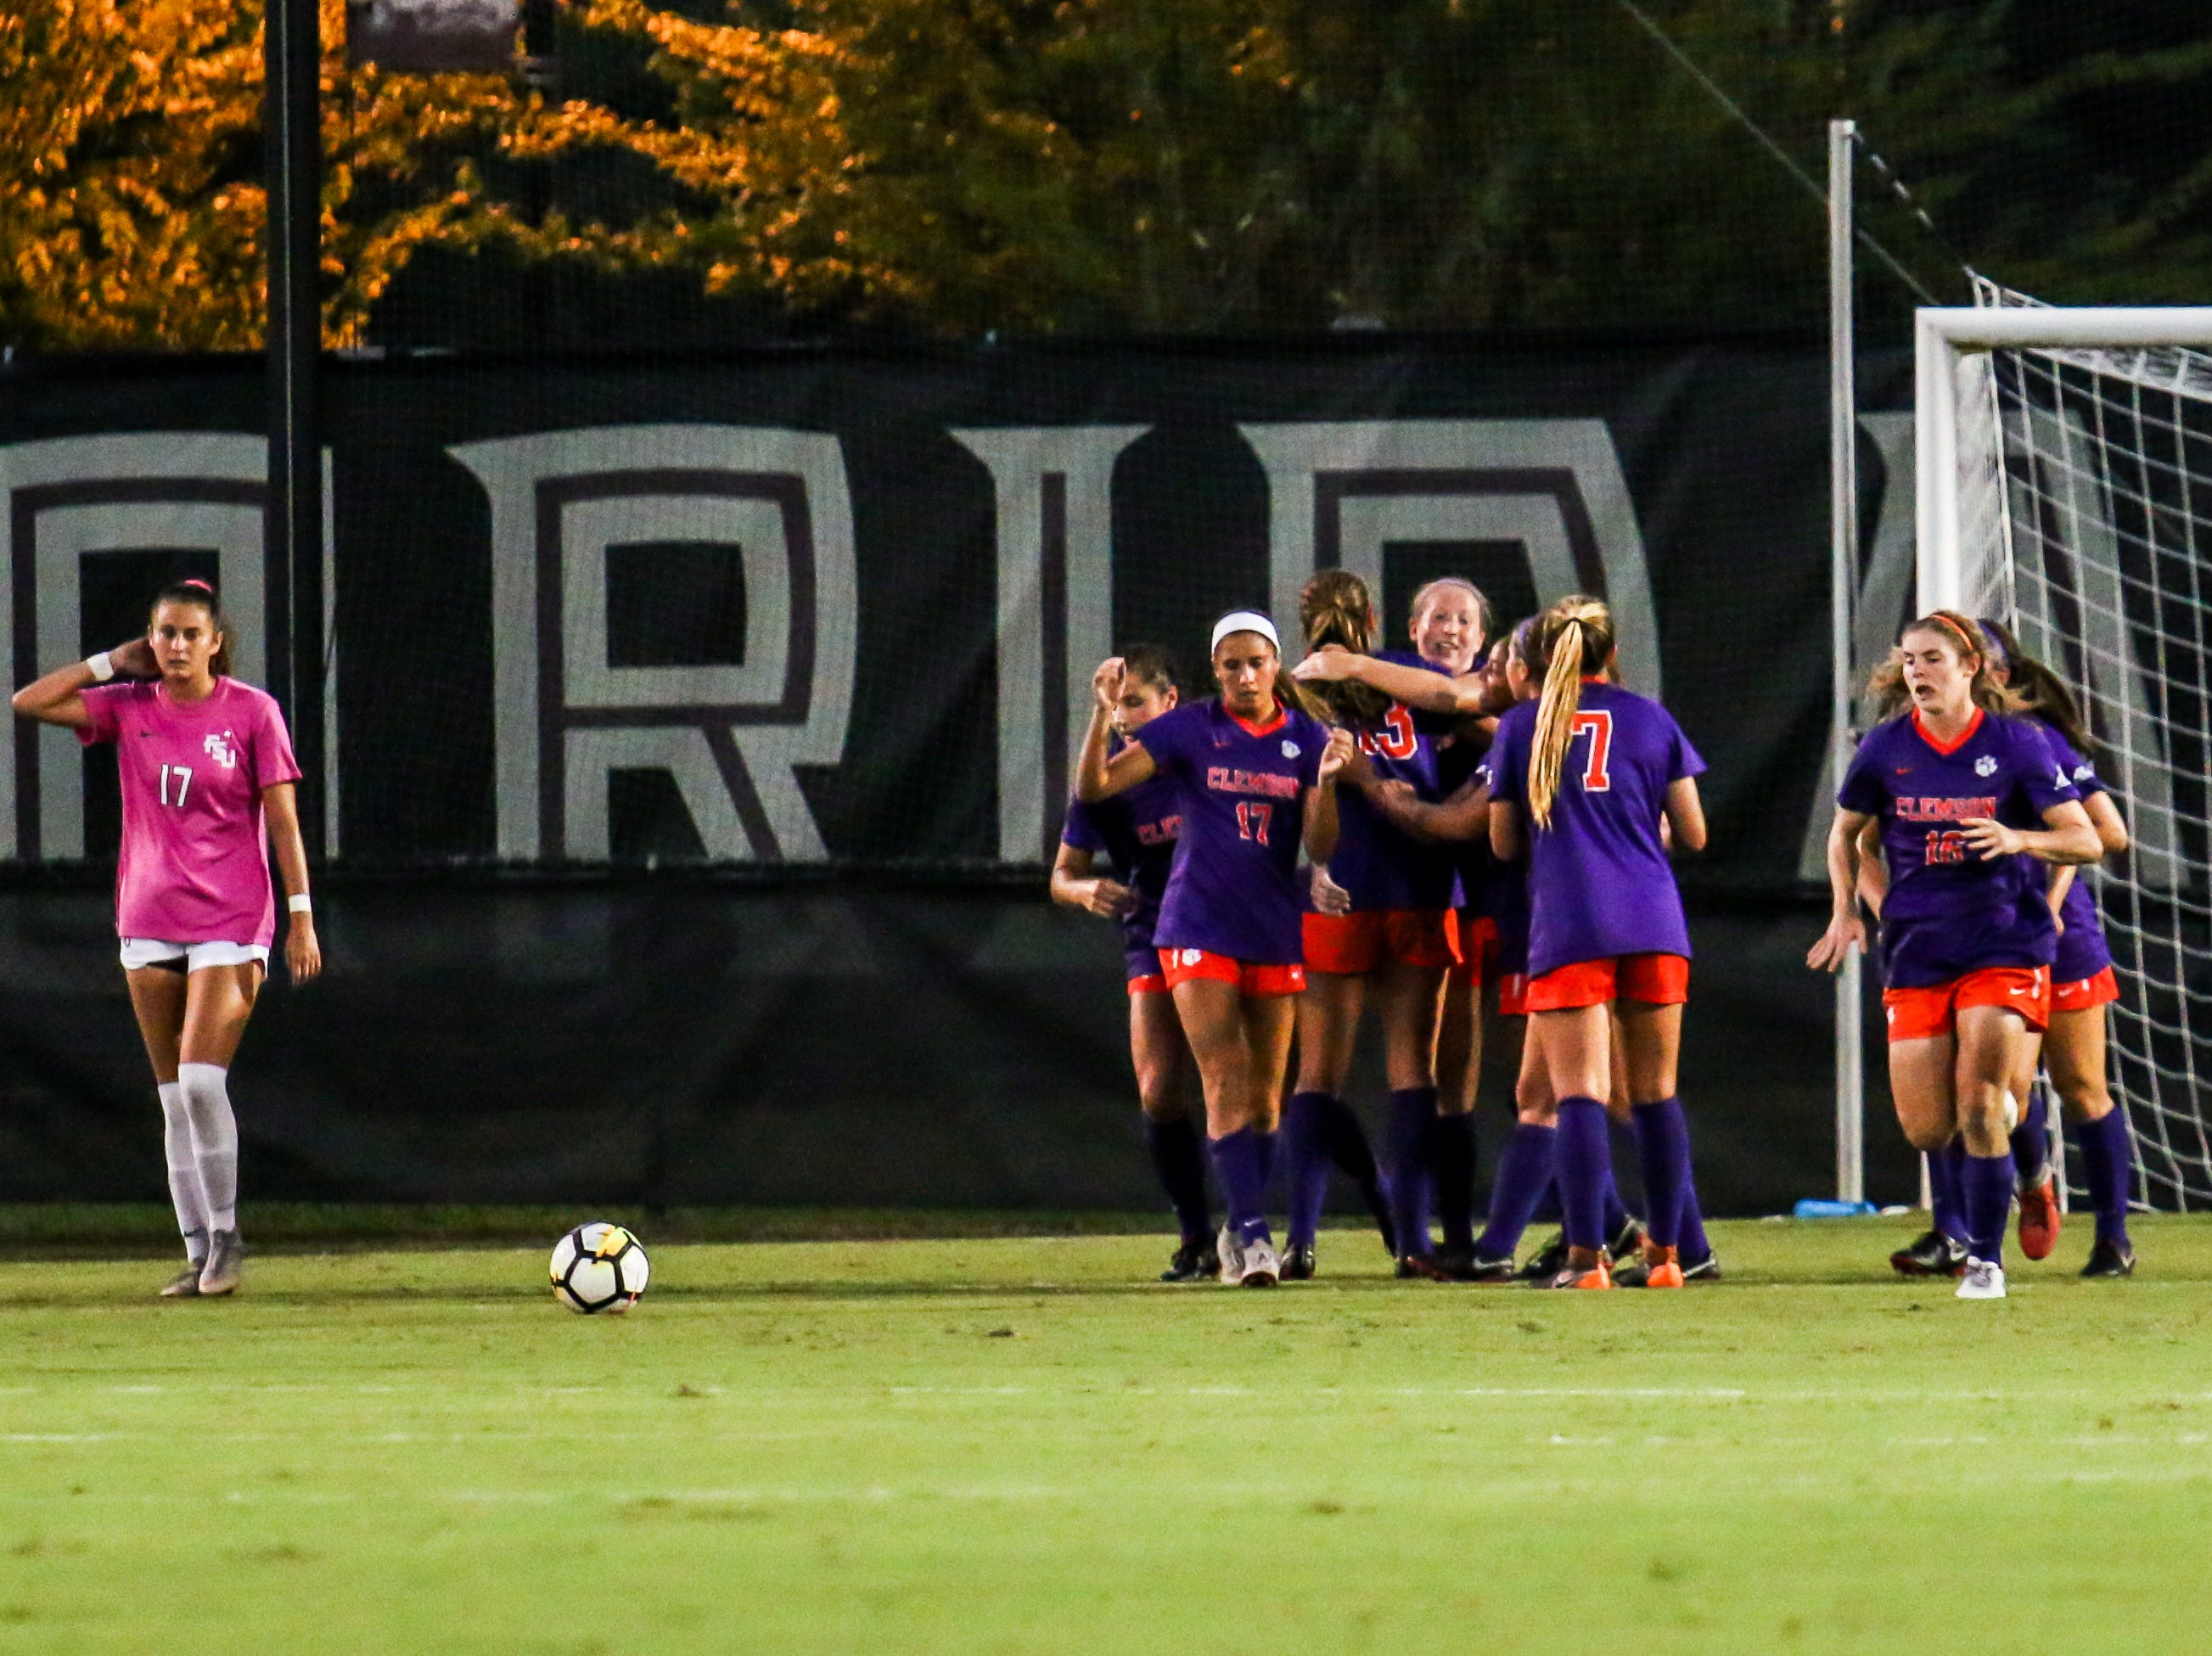 Clemson got an early goal in the first half and would eventually hold on to win 1-0 against the Noles on Thursday, October 4th at the Seminole Soccer Complex.